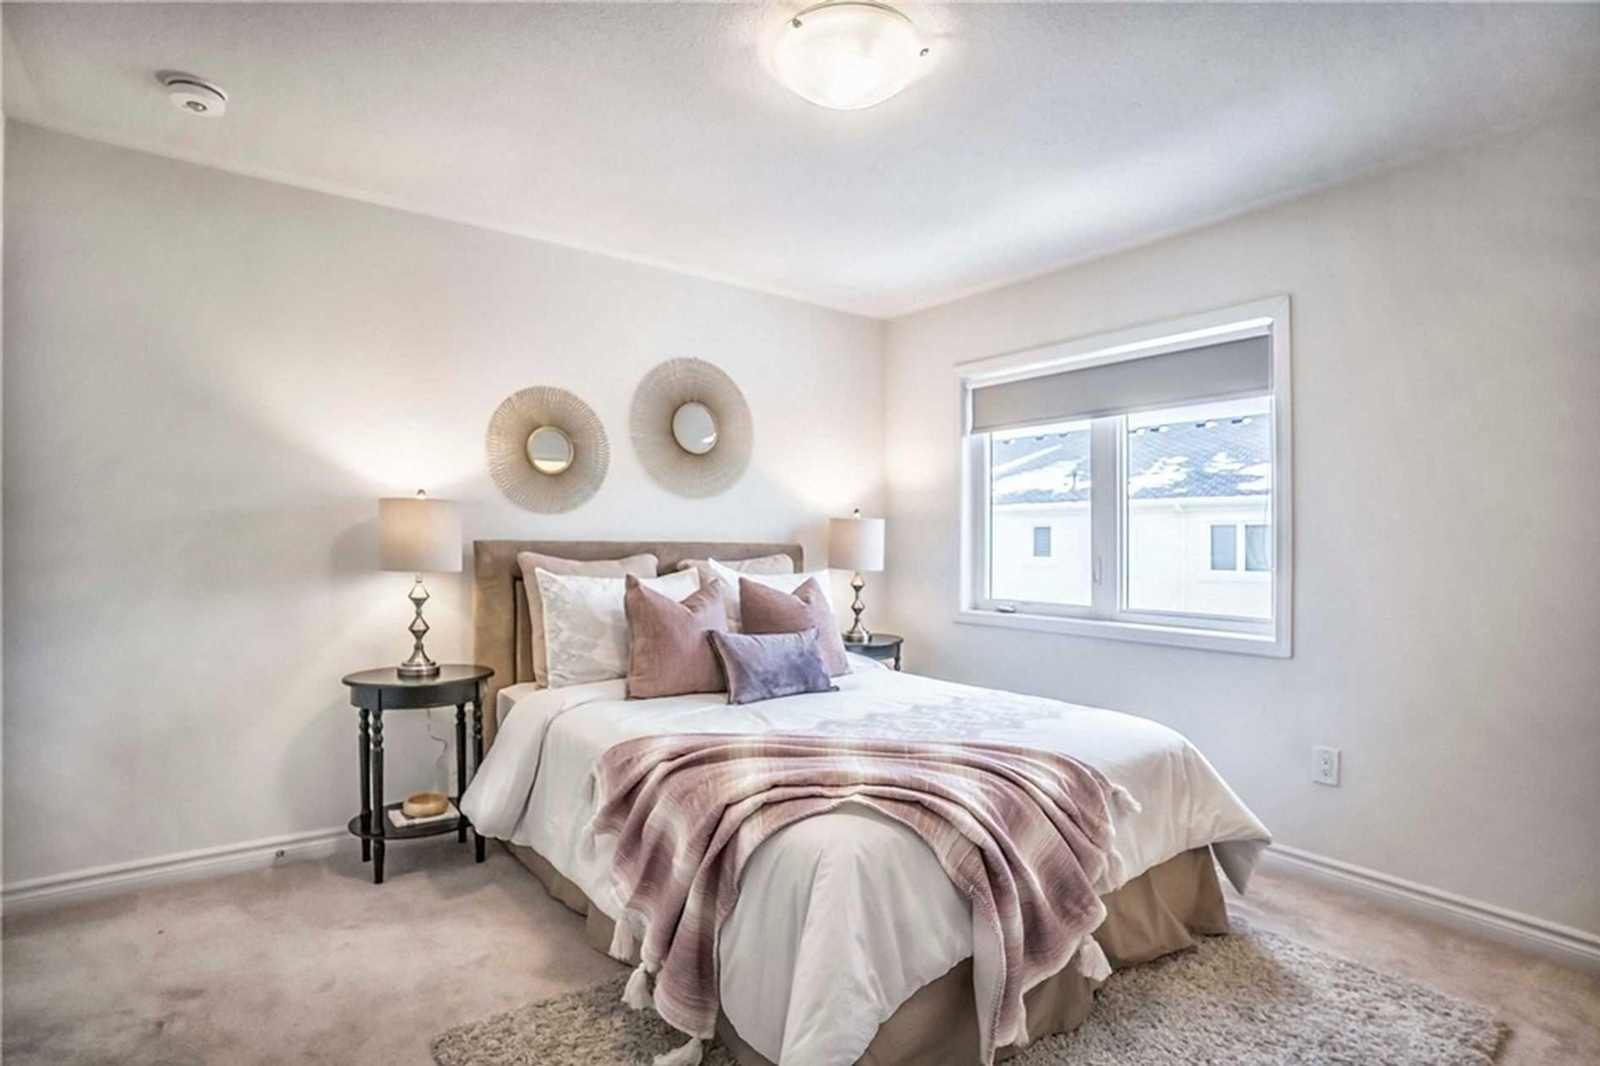 Elegant Staged Bedroom - Home Staging Consultation Services Brampton by Impressive Staging